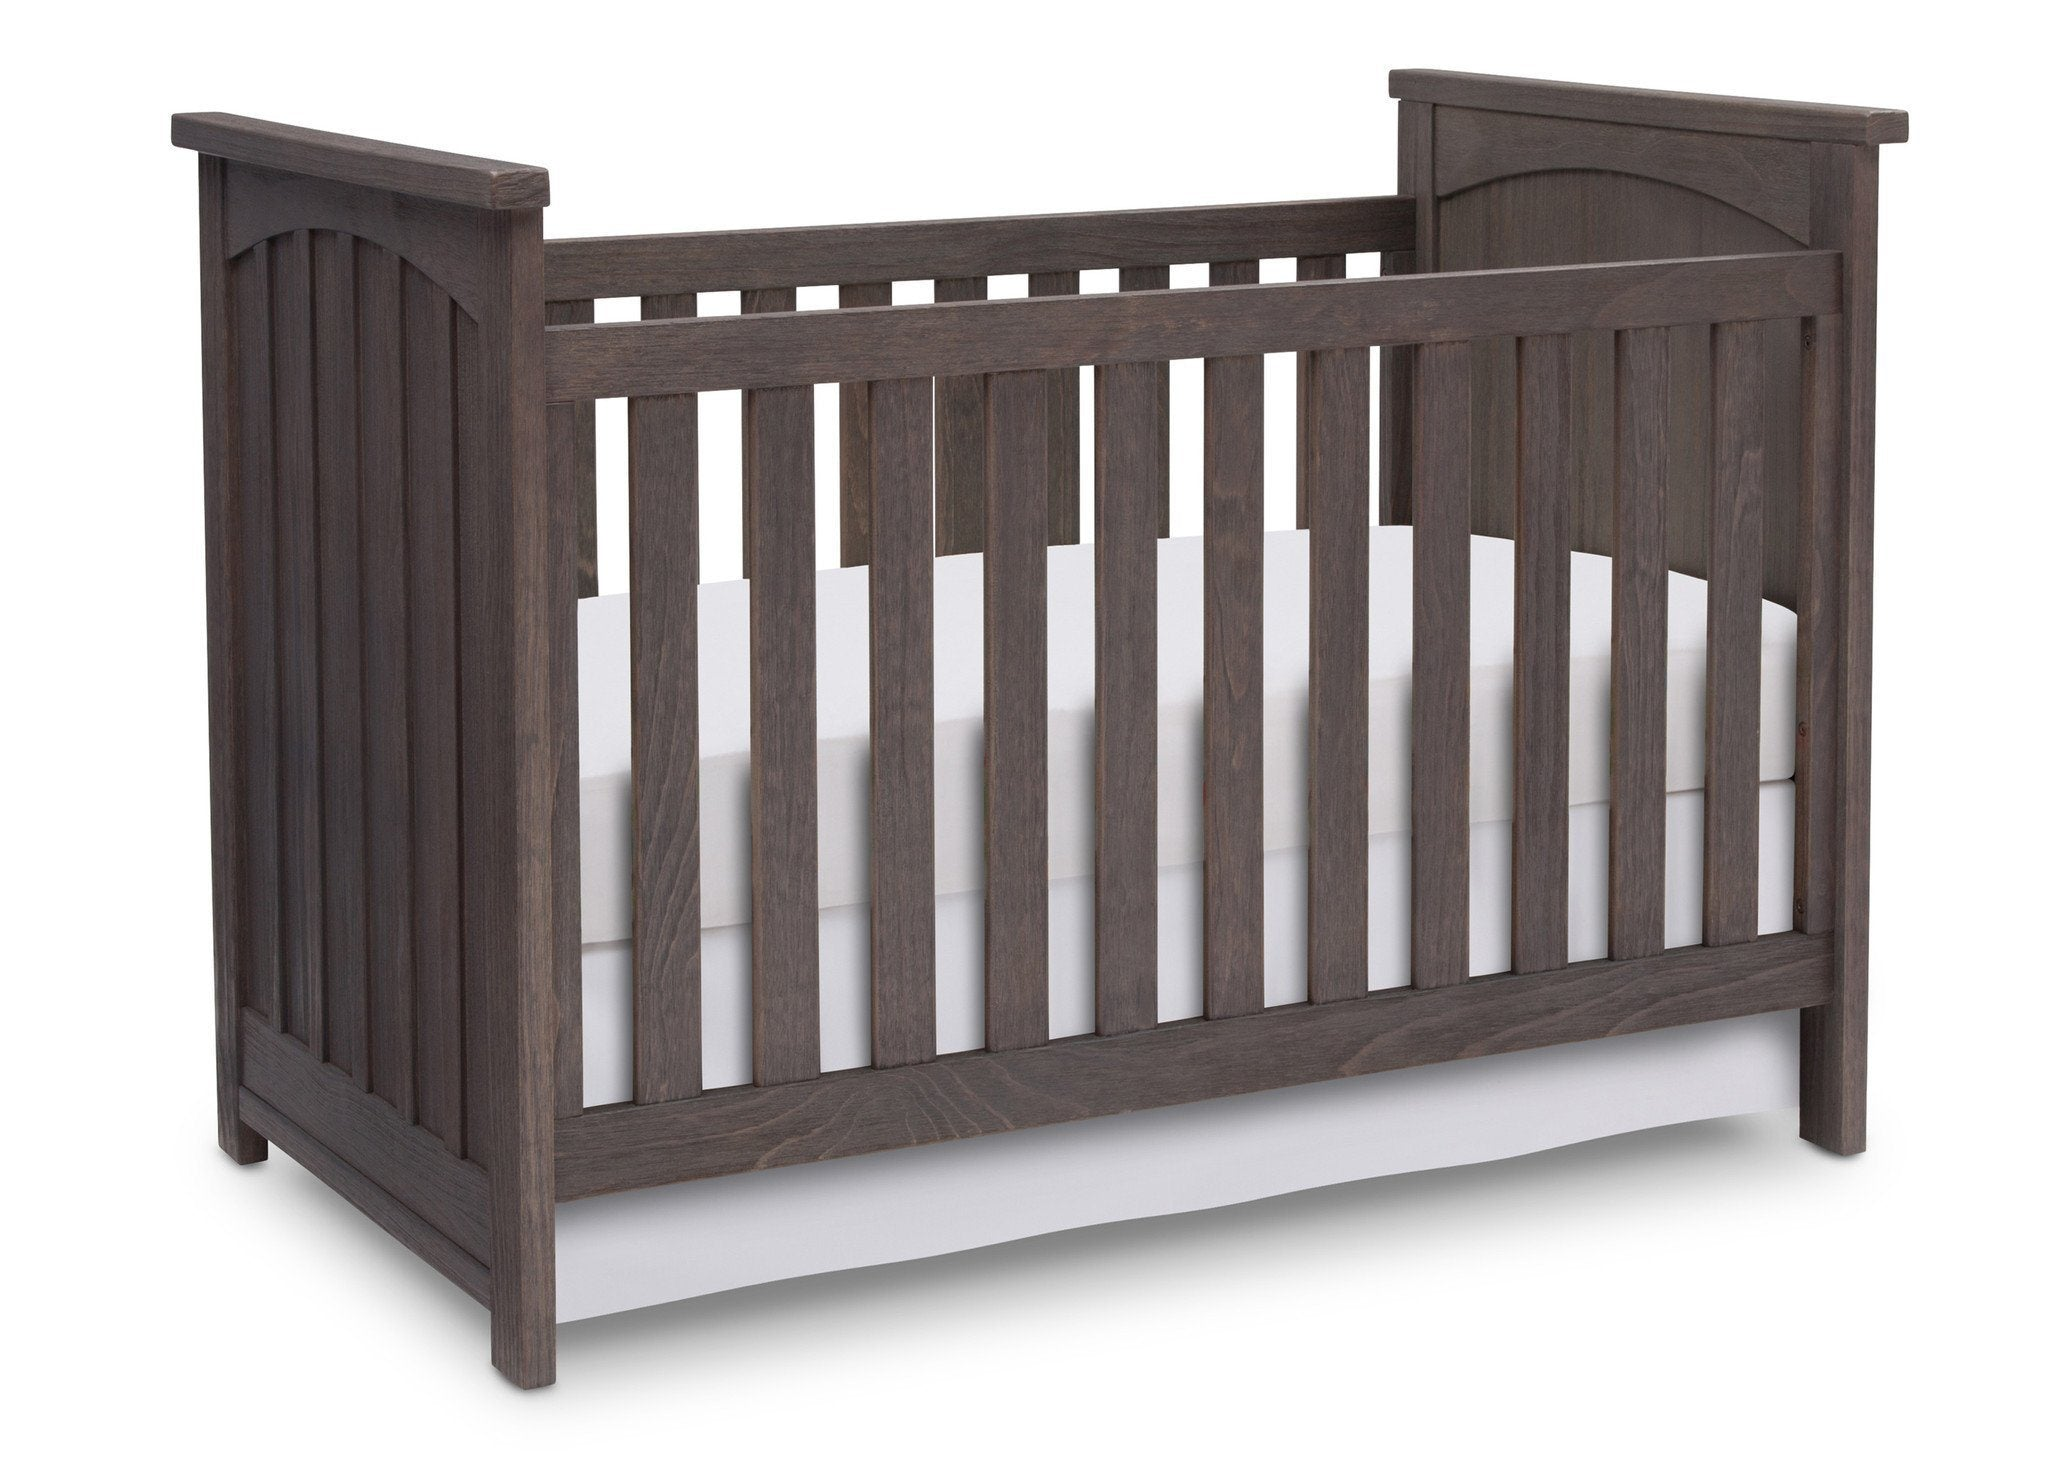 Serta Rustic Grey (084) Northbrook 3-in-1 Crib, Crib Conversion with Side View a3a